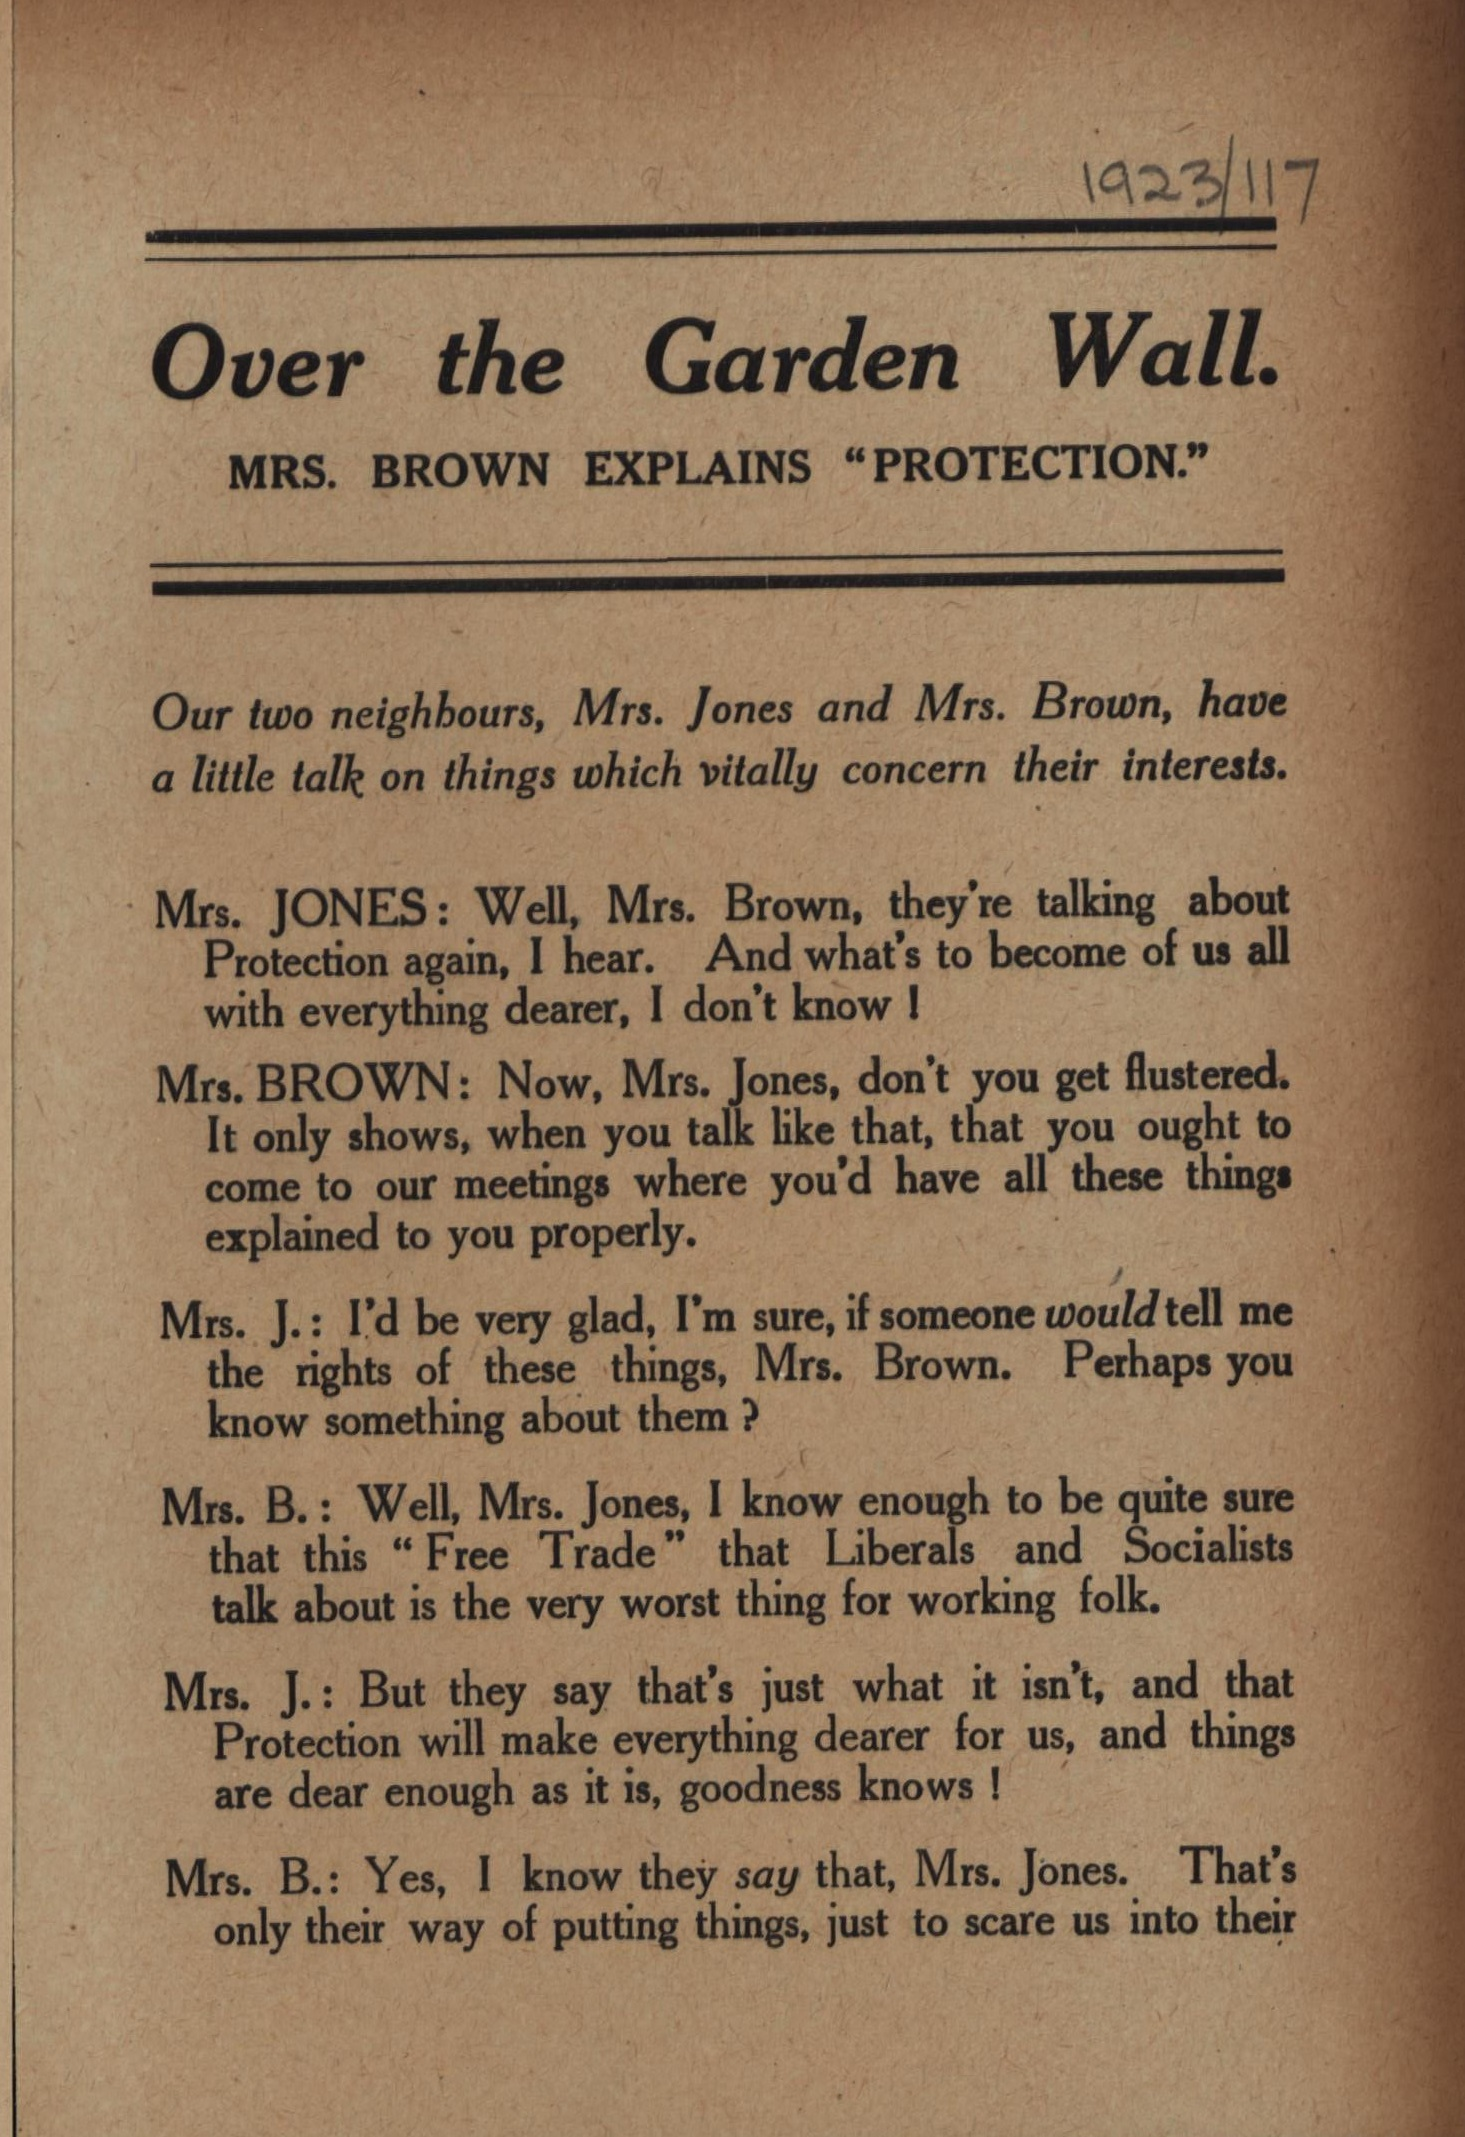 Over the Garden Wall leaflet 1